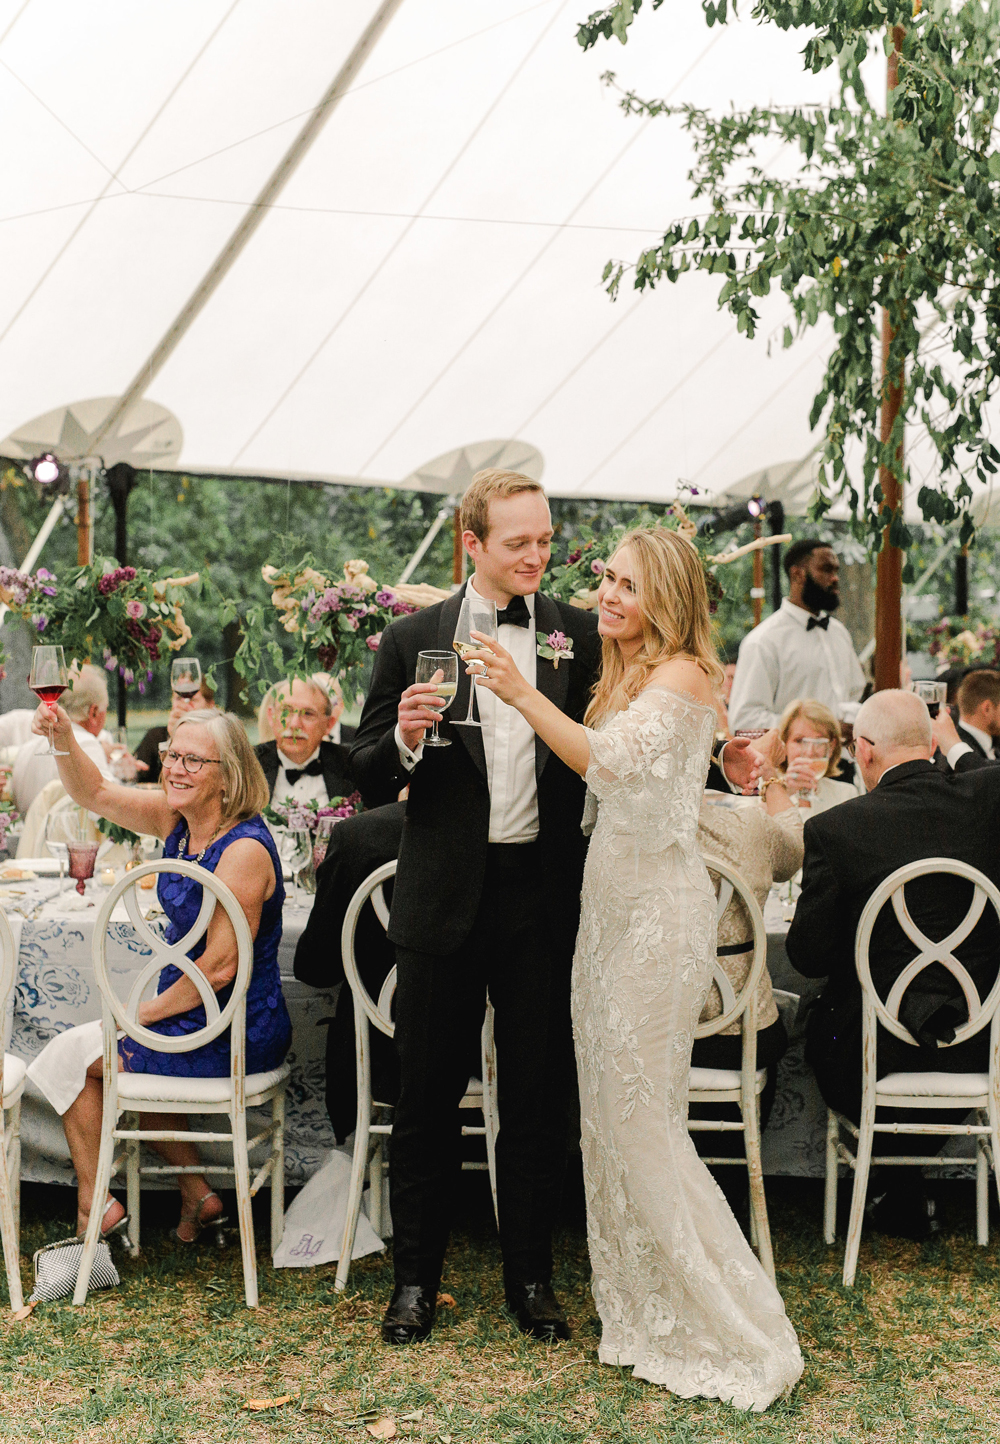 Do We Need to Have a Champagne Toast During Our Wedding Reception?